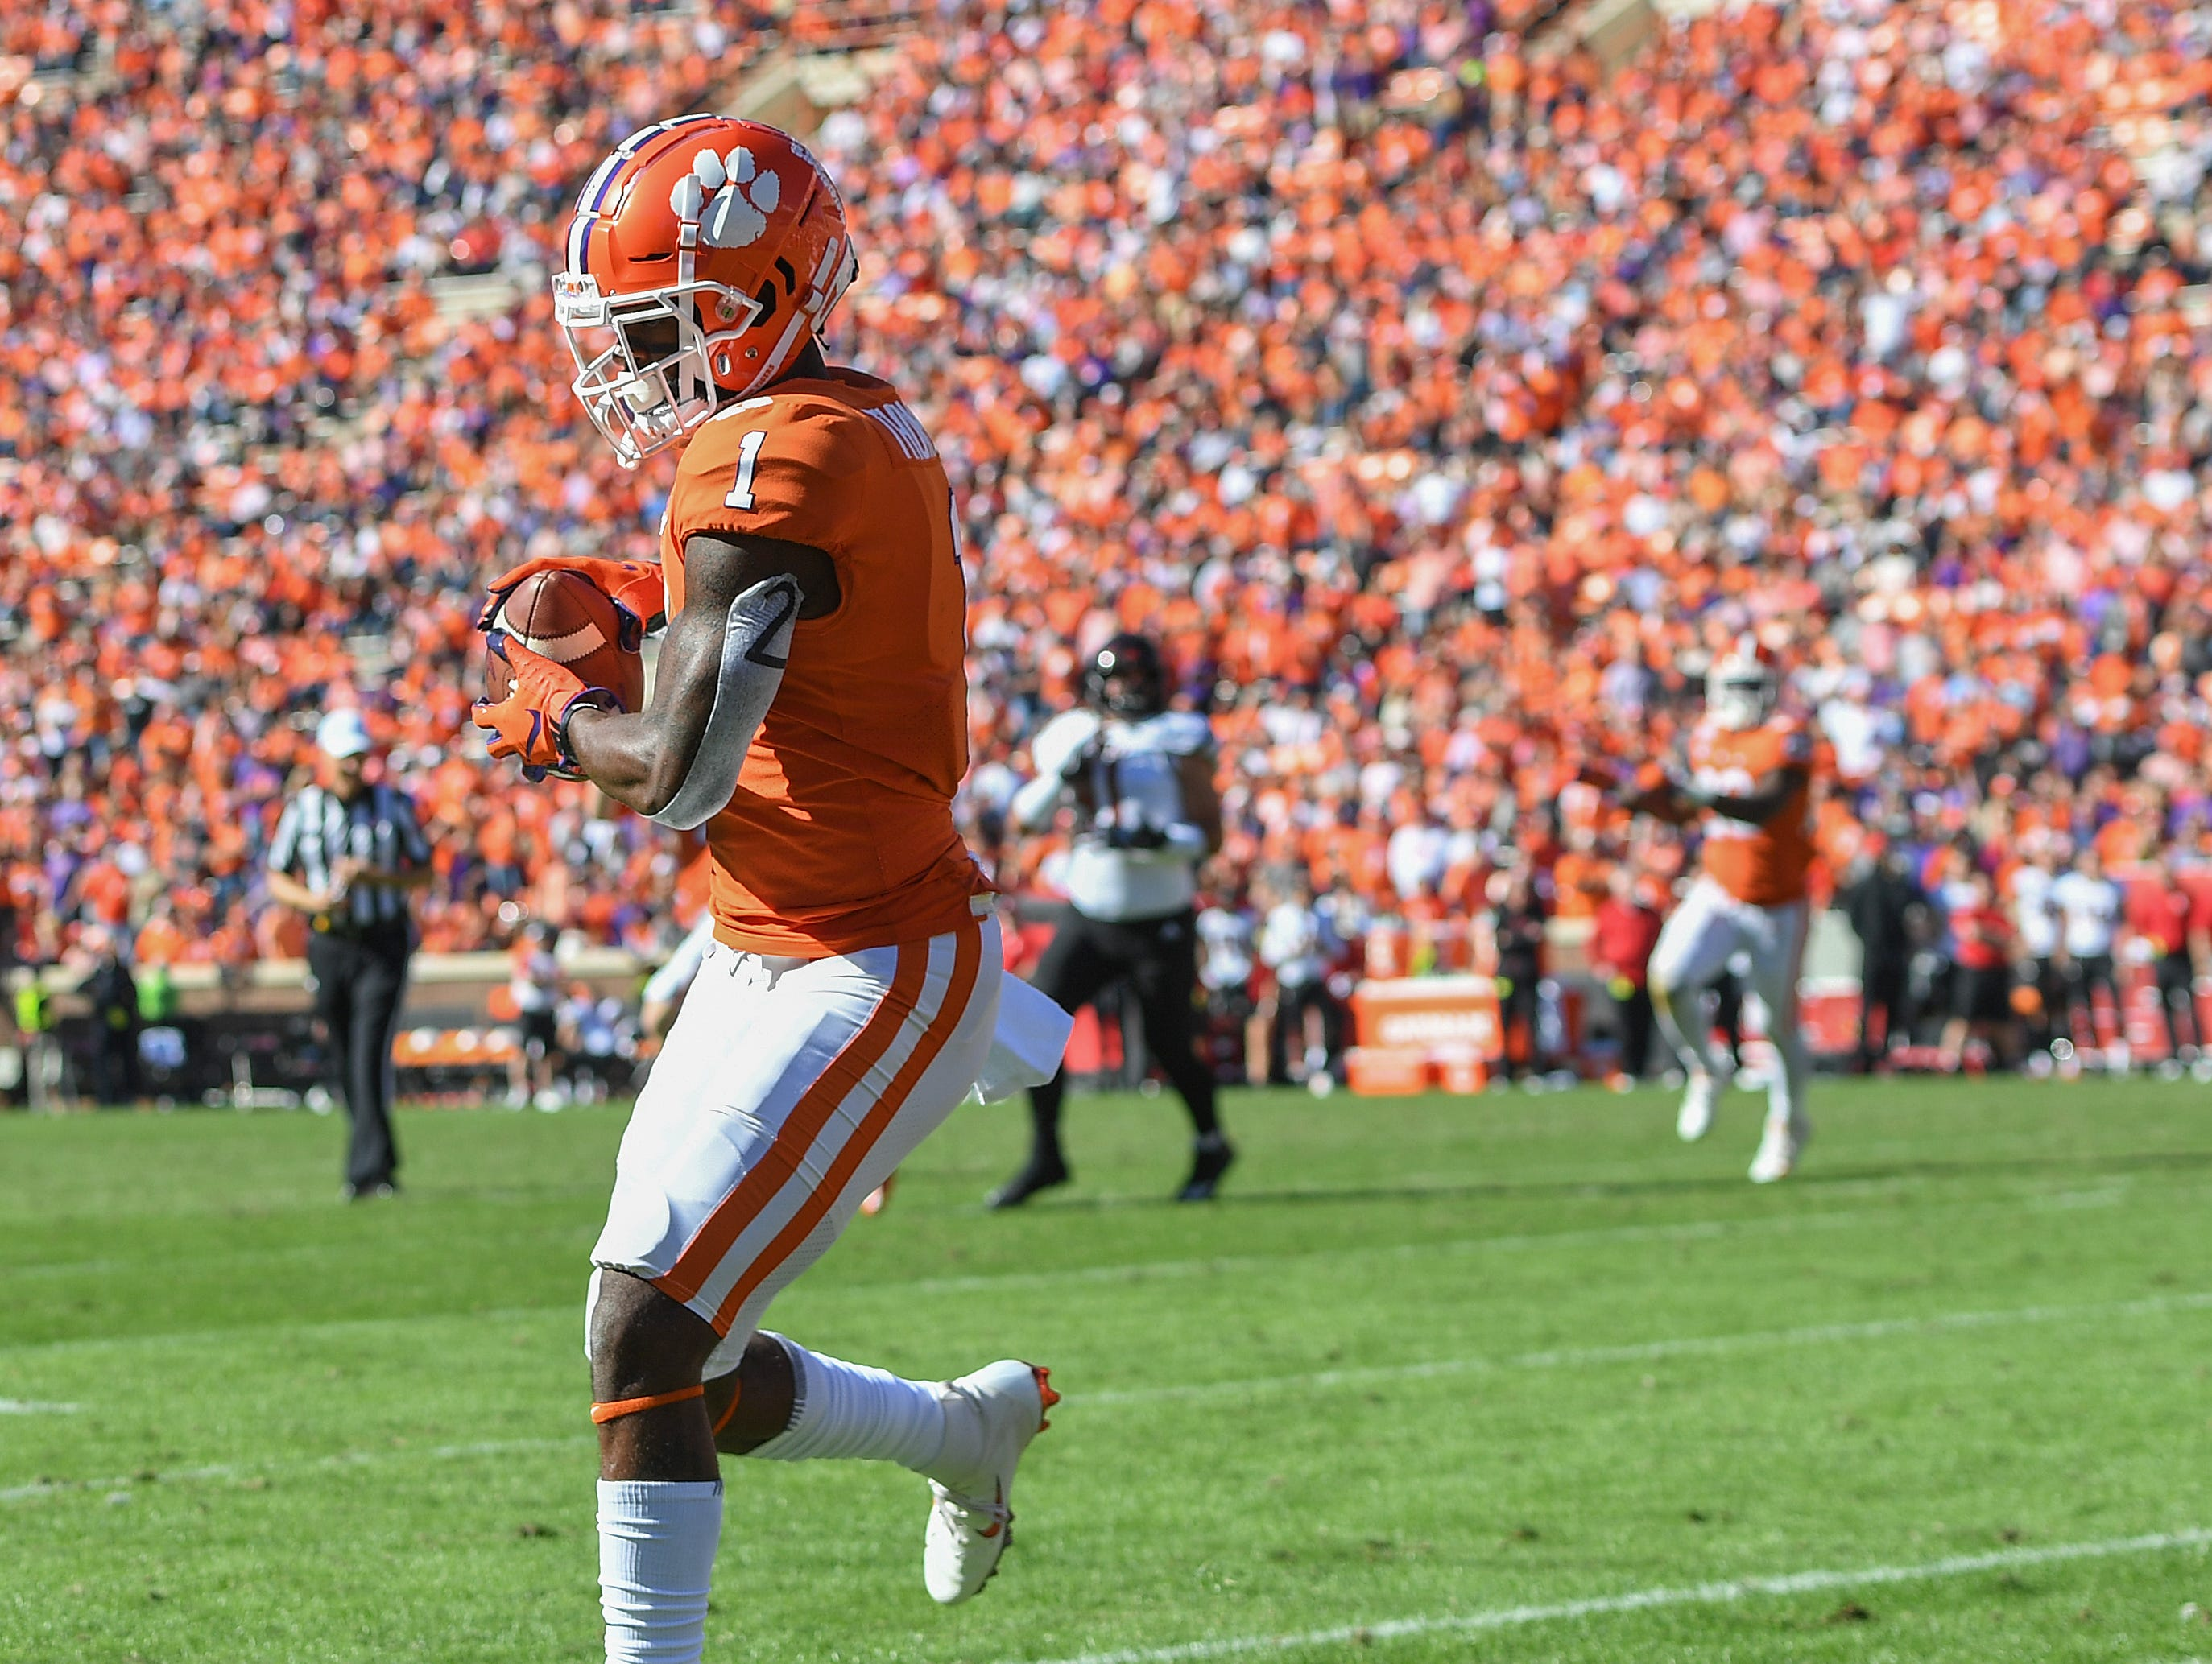 Clemson wide receiver Trevion Thompson (1) catches a TD against Louisville during the 3rd quarter Saturday, November 3, 2018 at Clemson's Memorial Stadium.